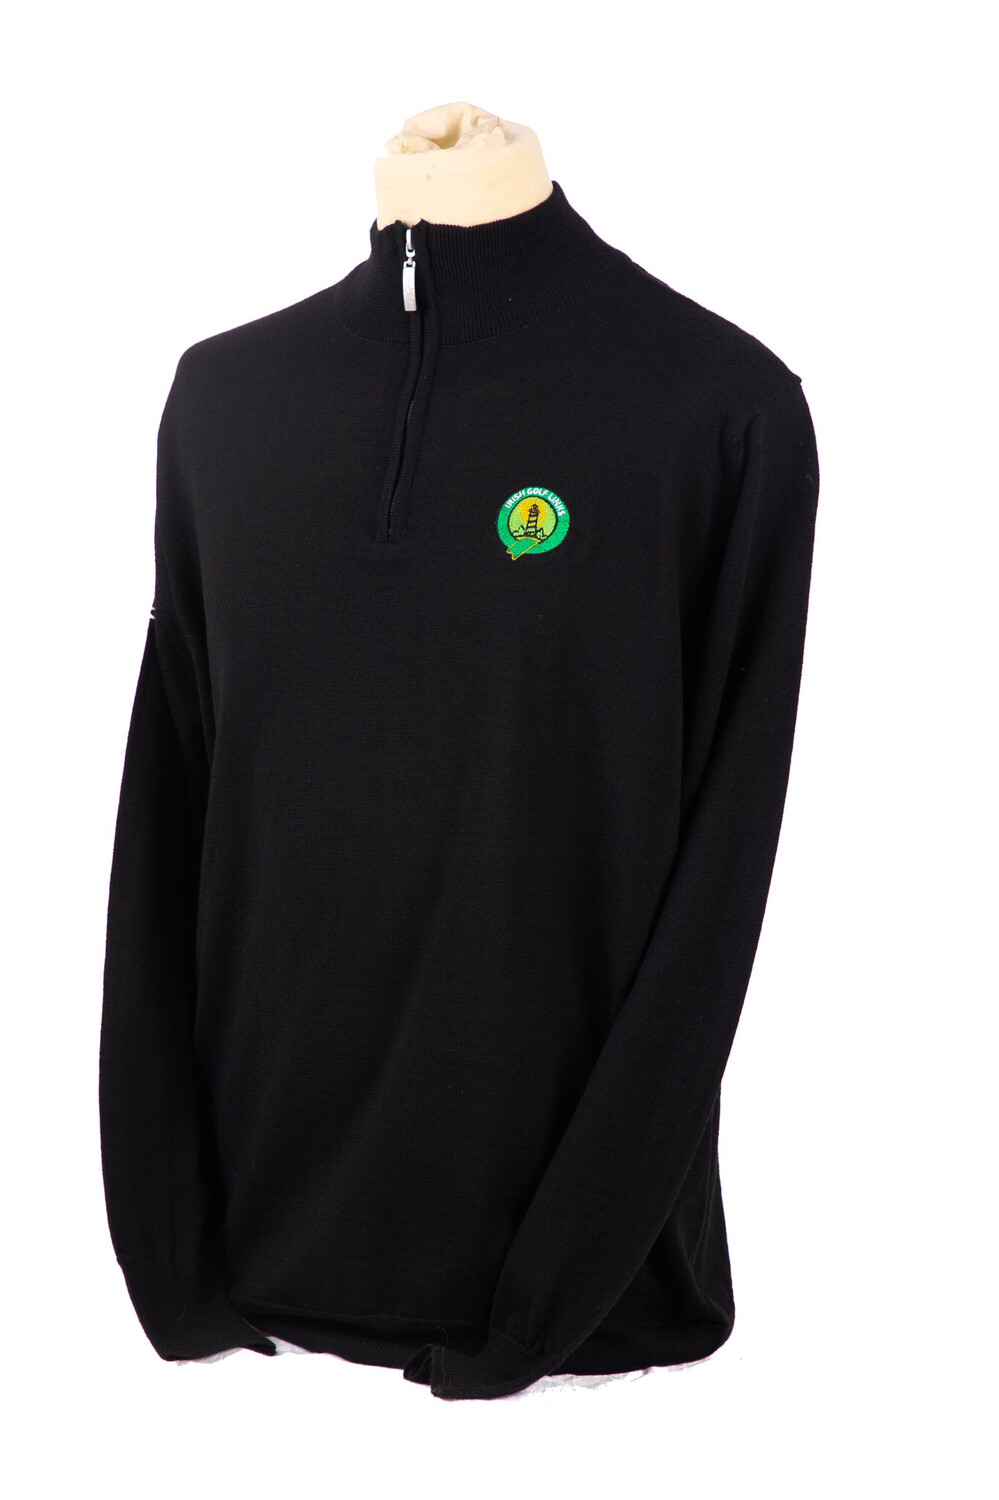 Dooks Golf Club 1/4 Zip Greg Norman Sweater